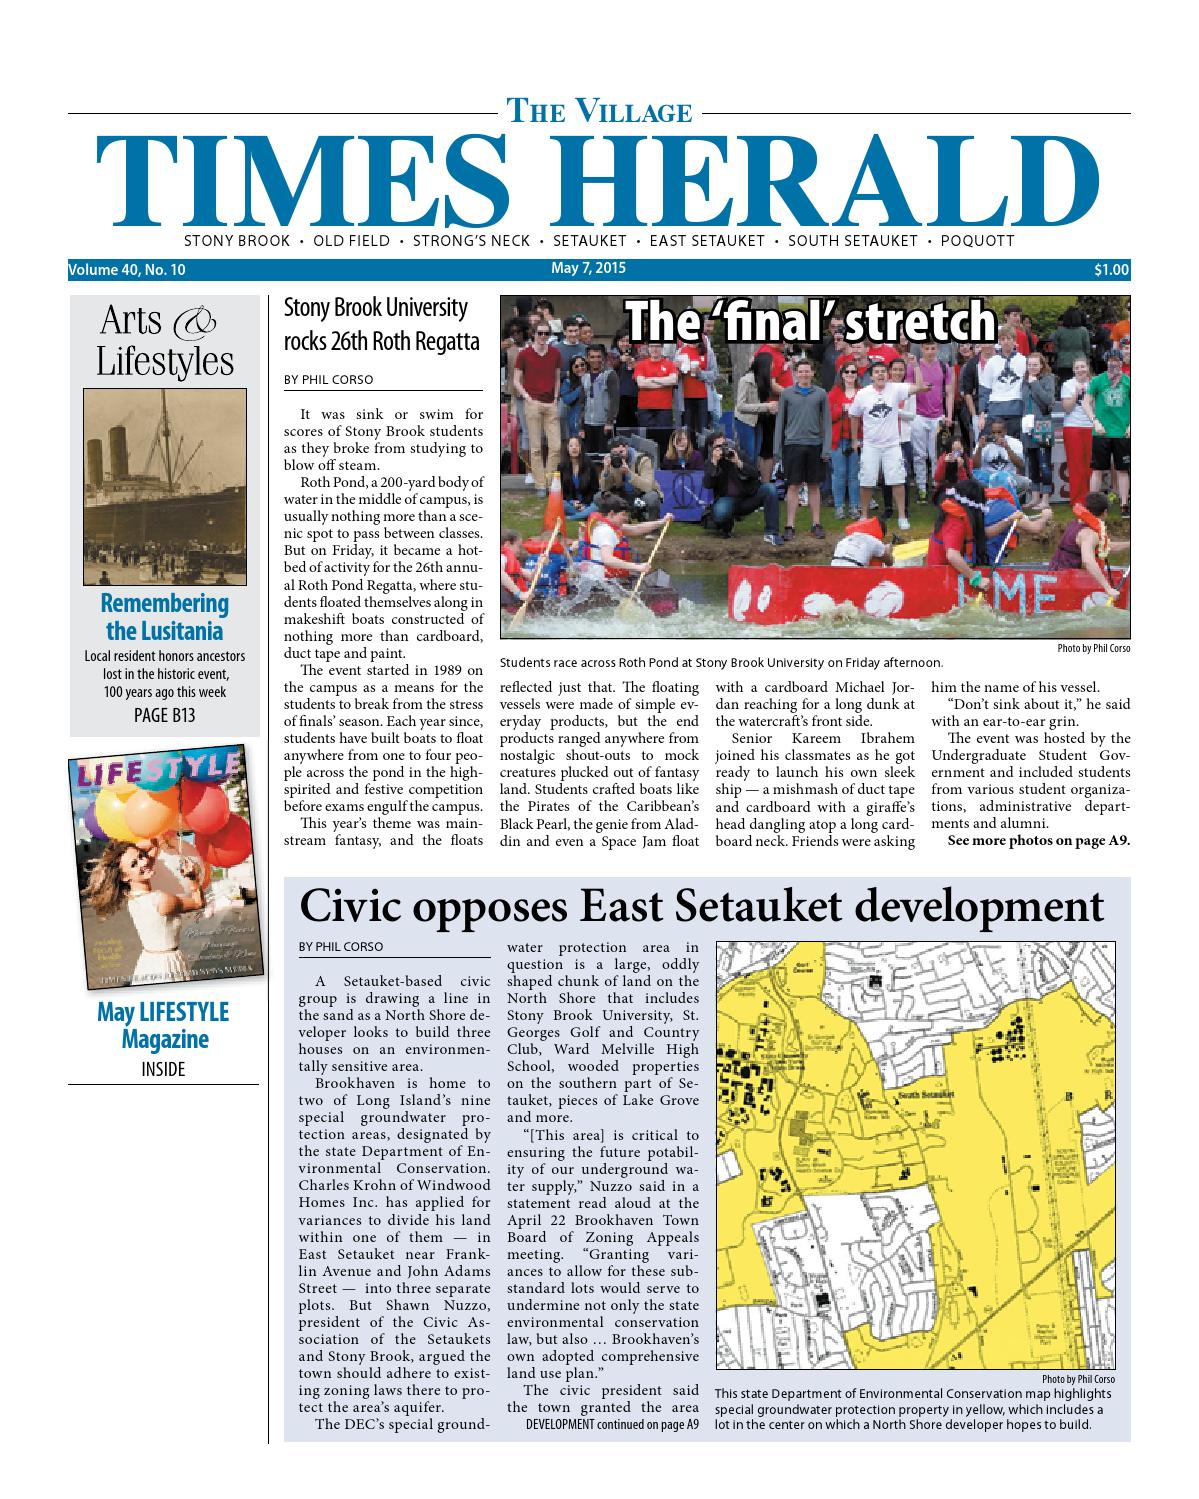 The Village Times Herald - May 7, 2015 by TBR News Media - issuu